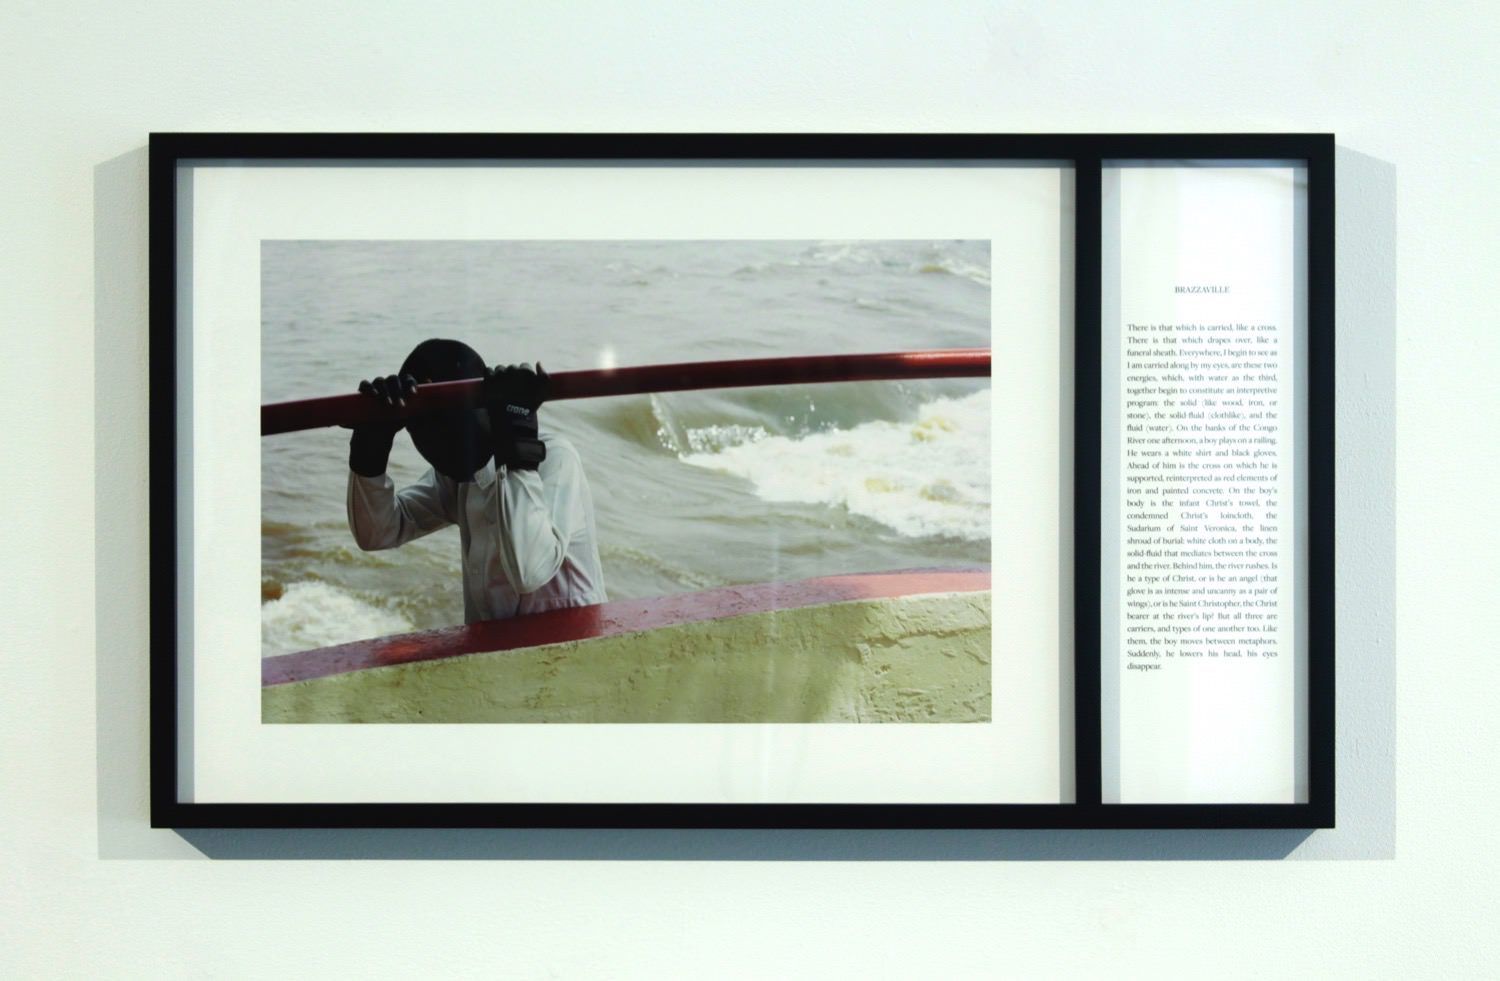 Teju Cole Brazzaville February 2013 Framed With Text